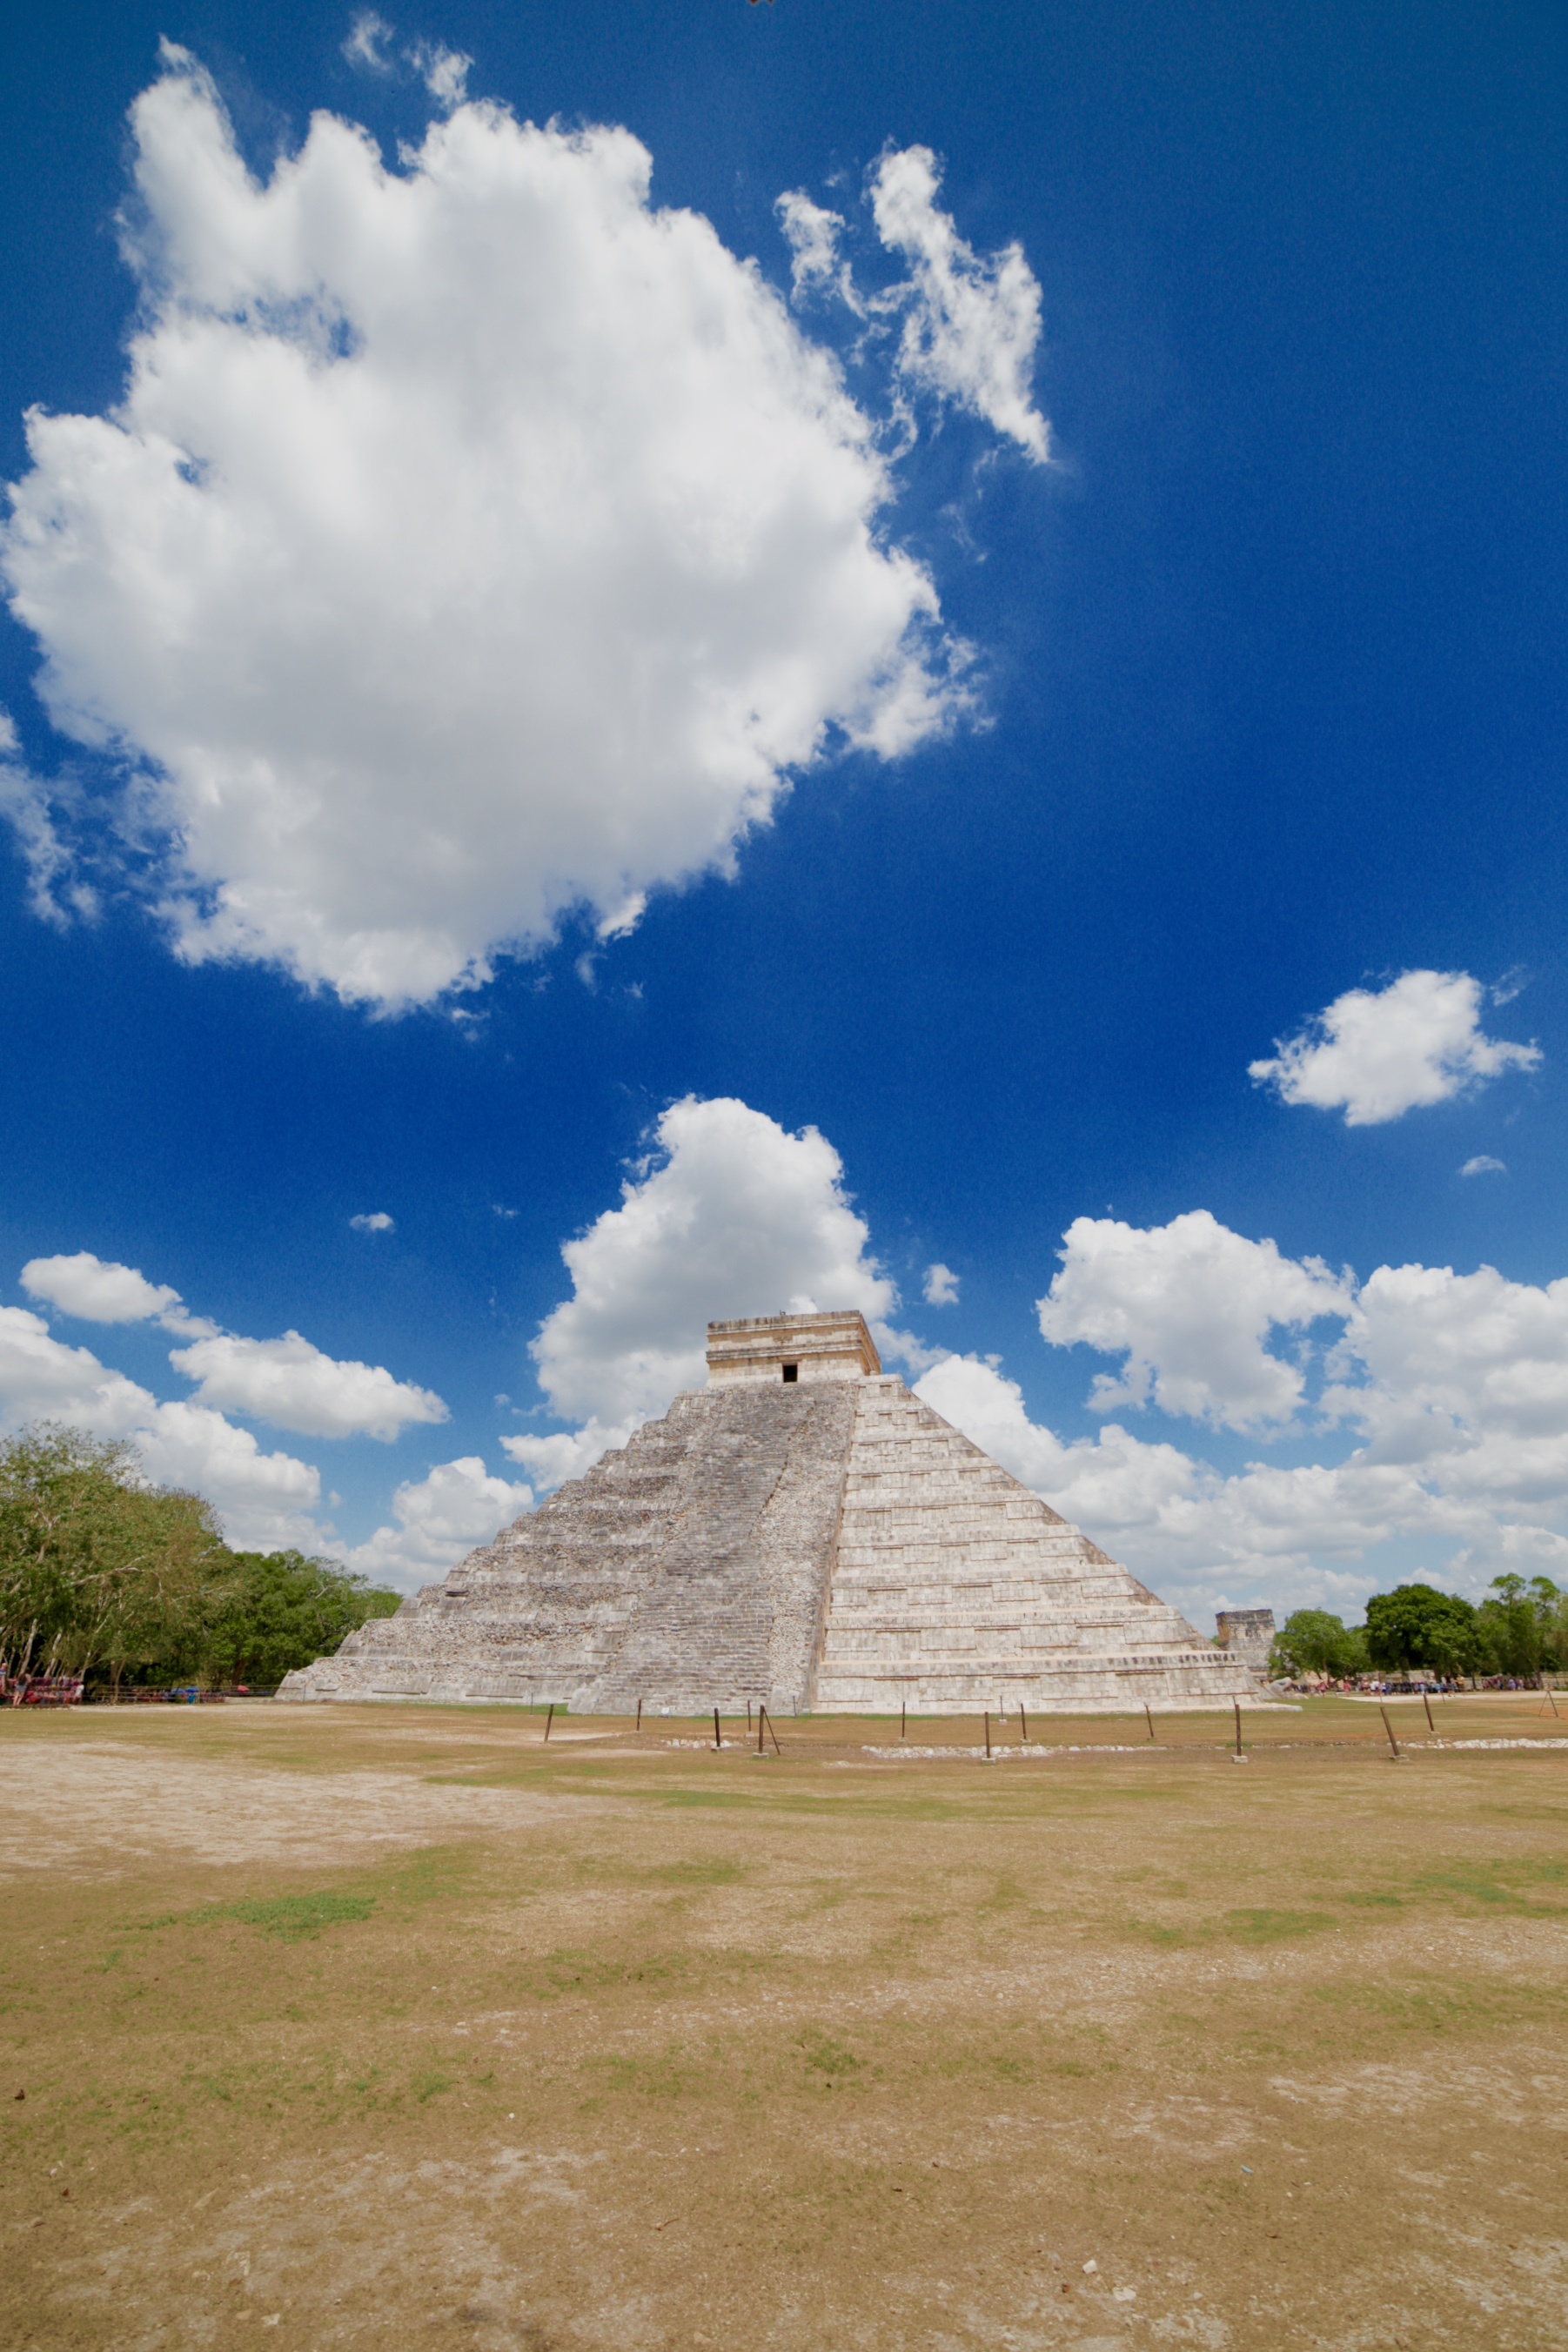 Chichen Itza Mayan ruins professional photography - on a sunny summer day under the blue sky and puffy clouds.